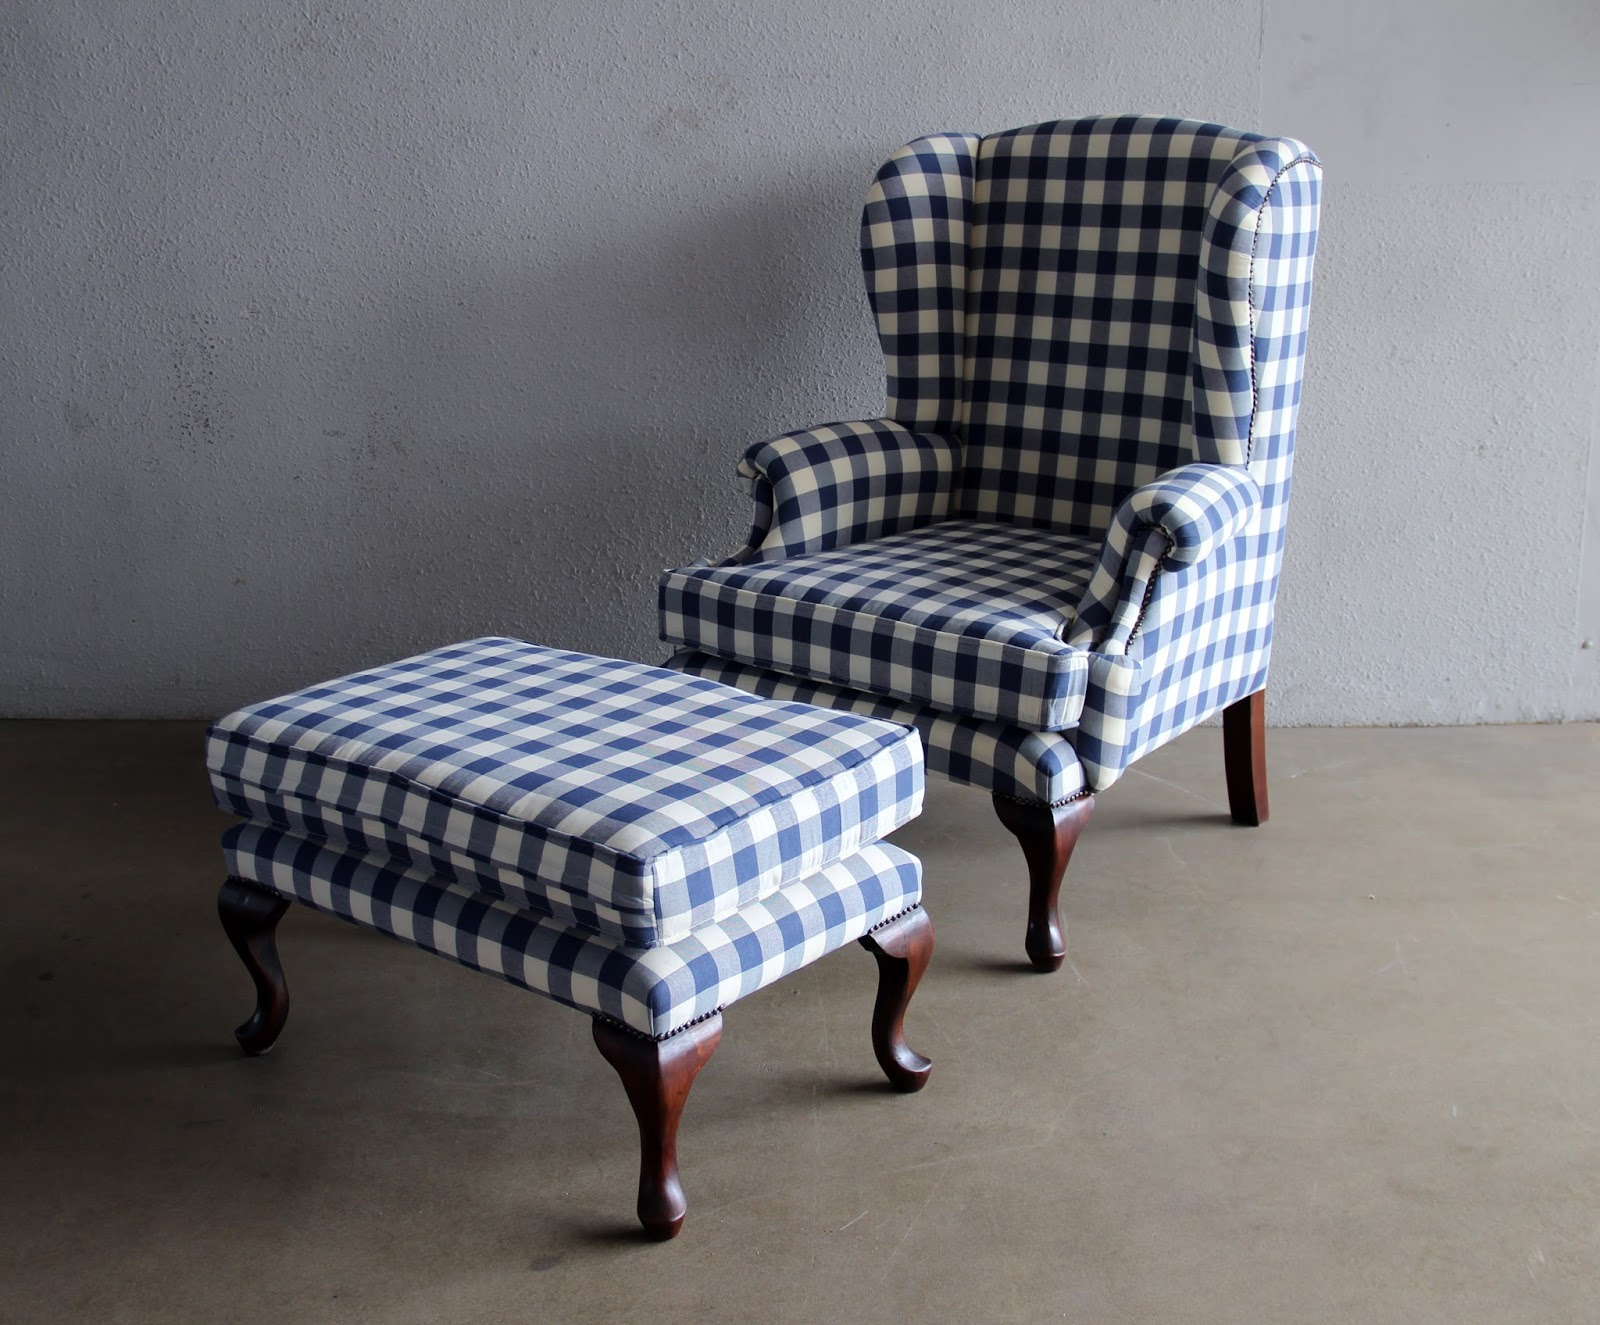 Gingham Chair Reproducing Some Of The Best Of Midcentury Furniture While